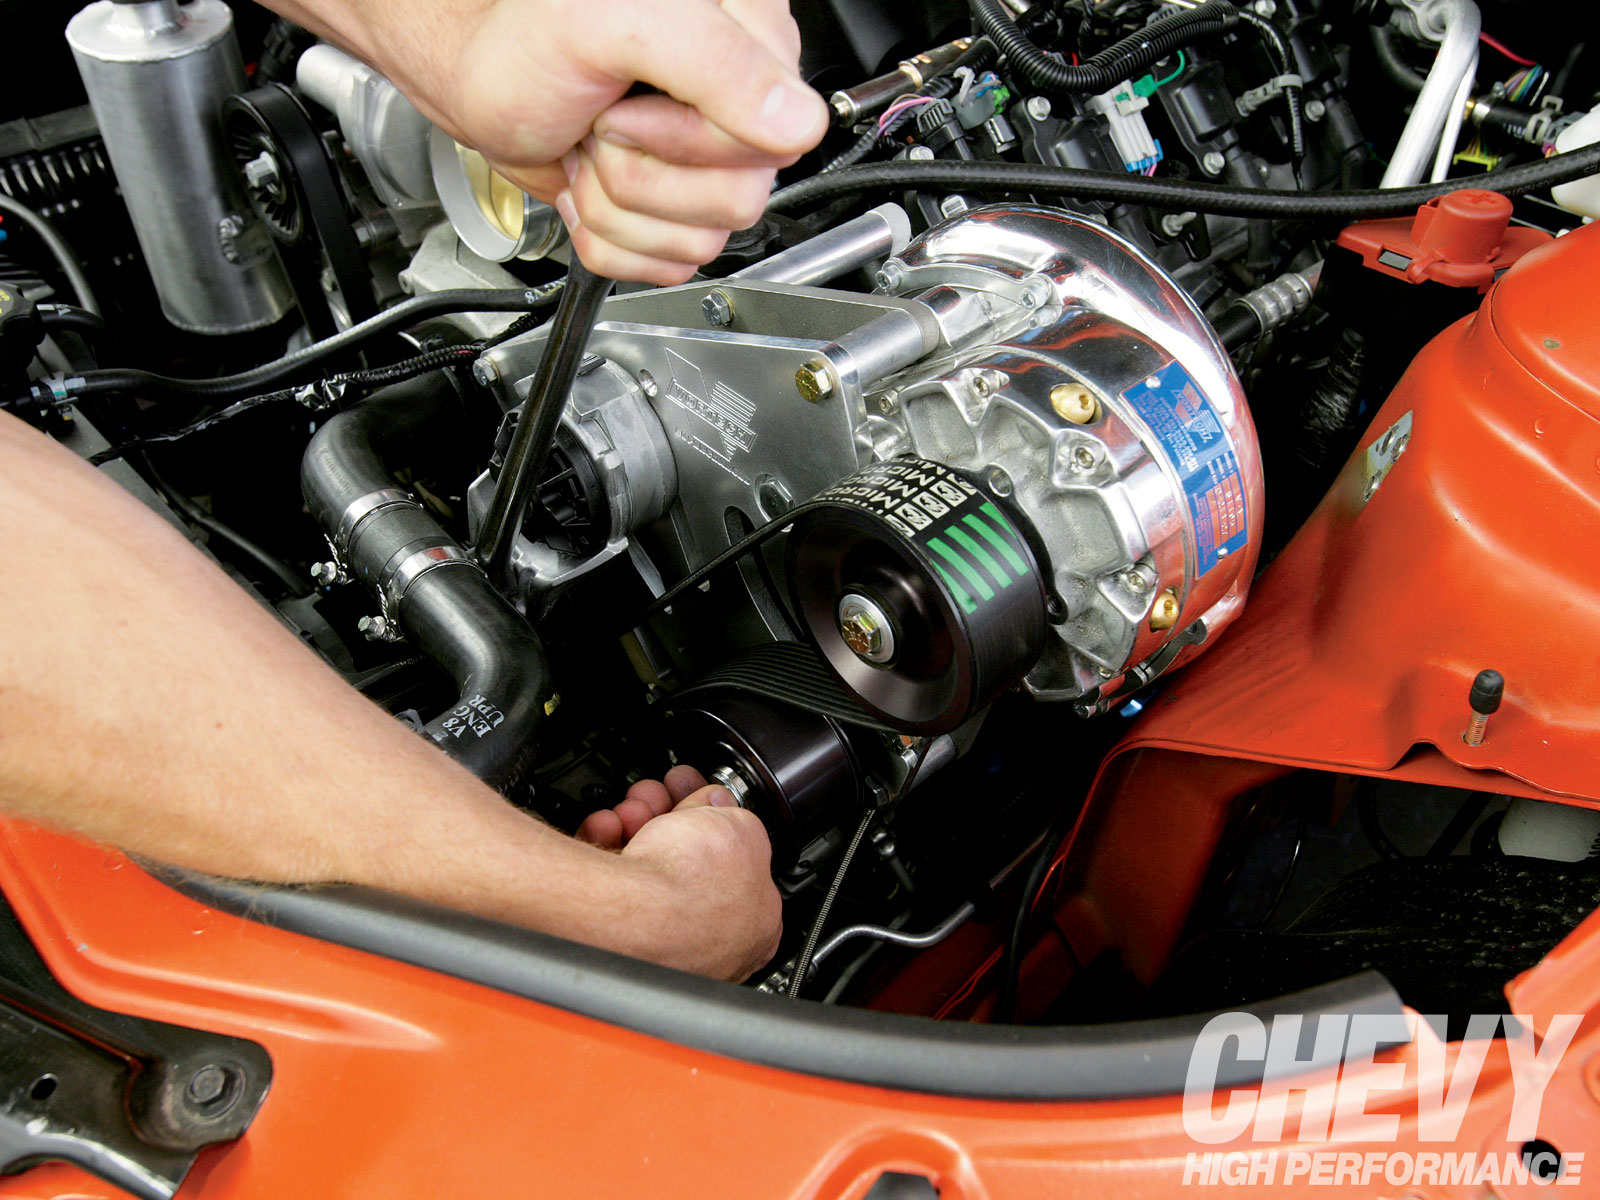 Vortech Superchargers' Blog | All about boost, and Vortech